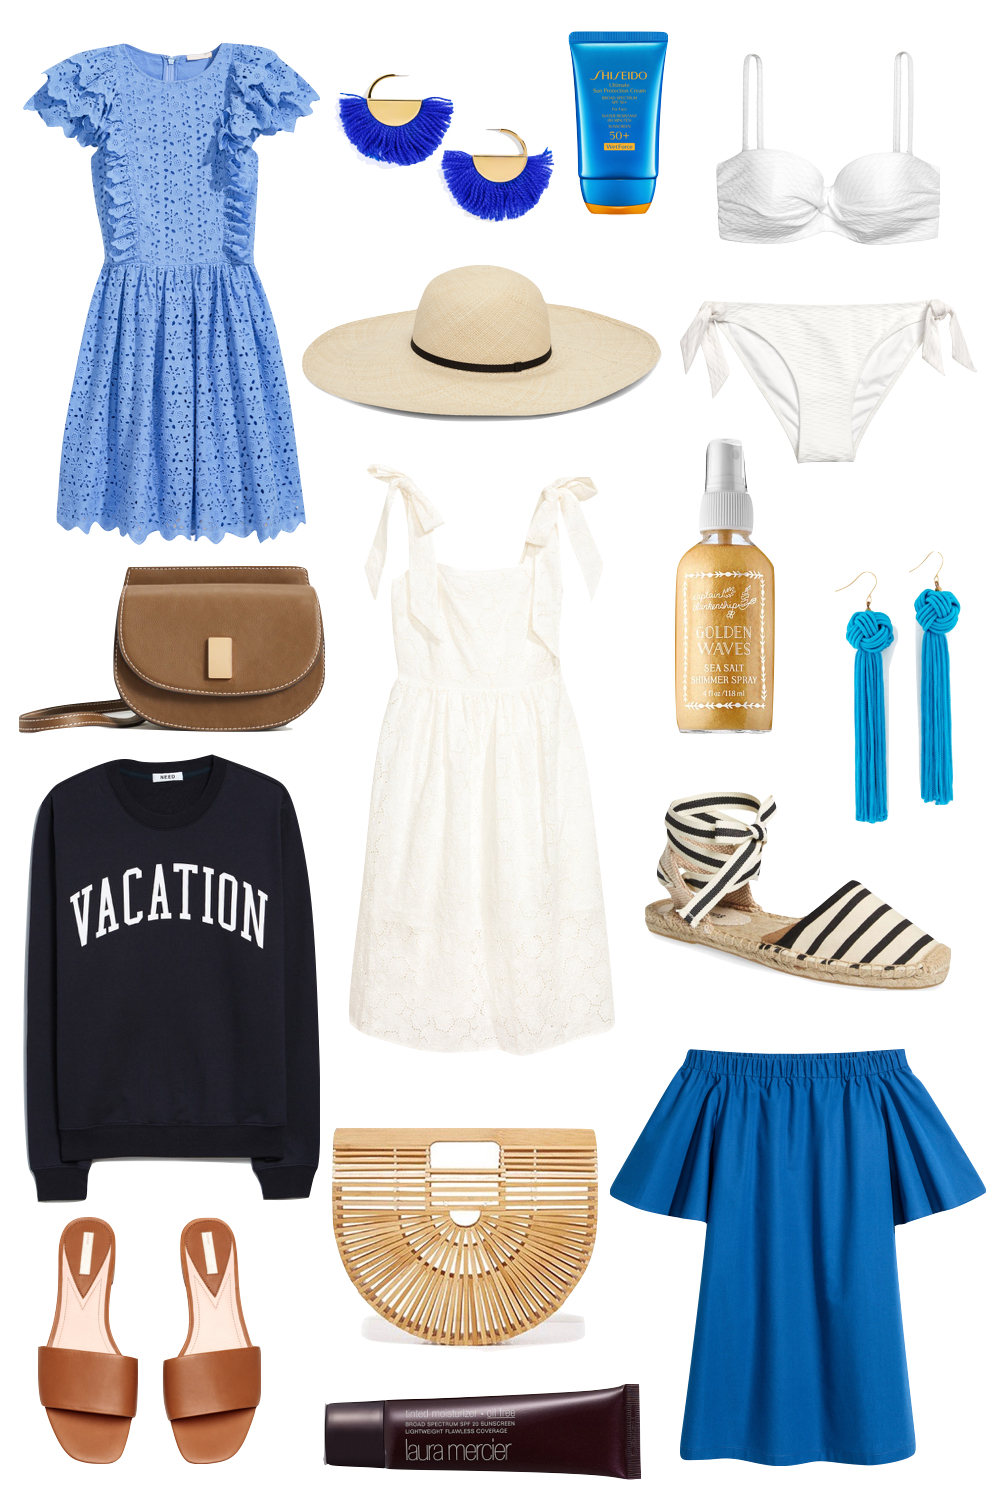 affordable vacation outfit ideas | the stripe